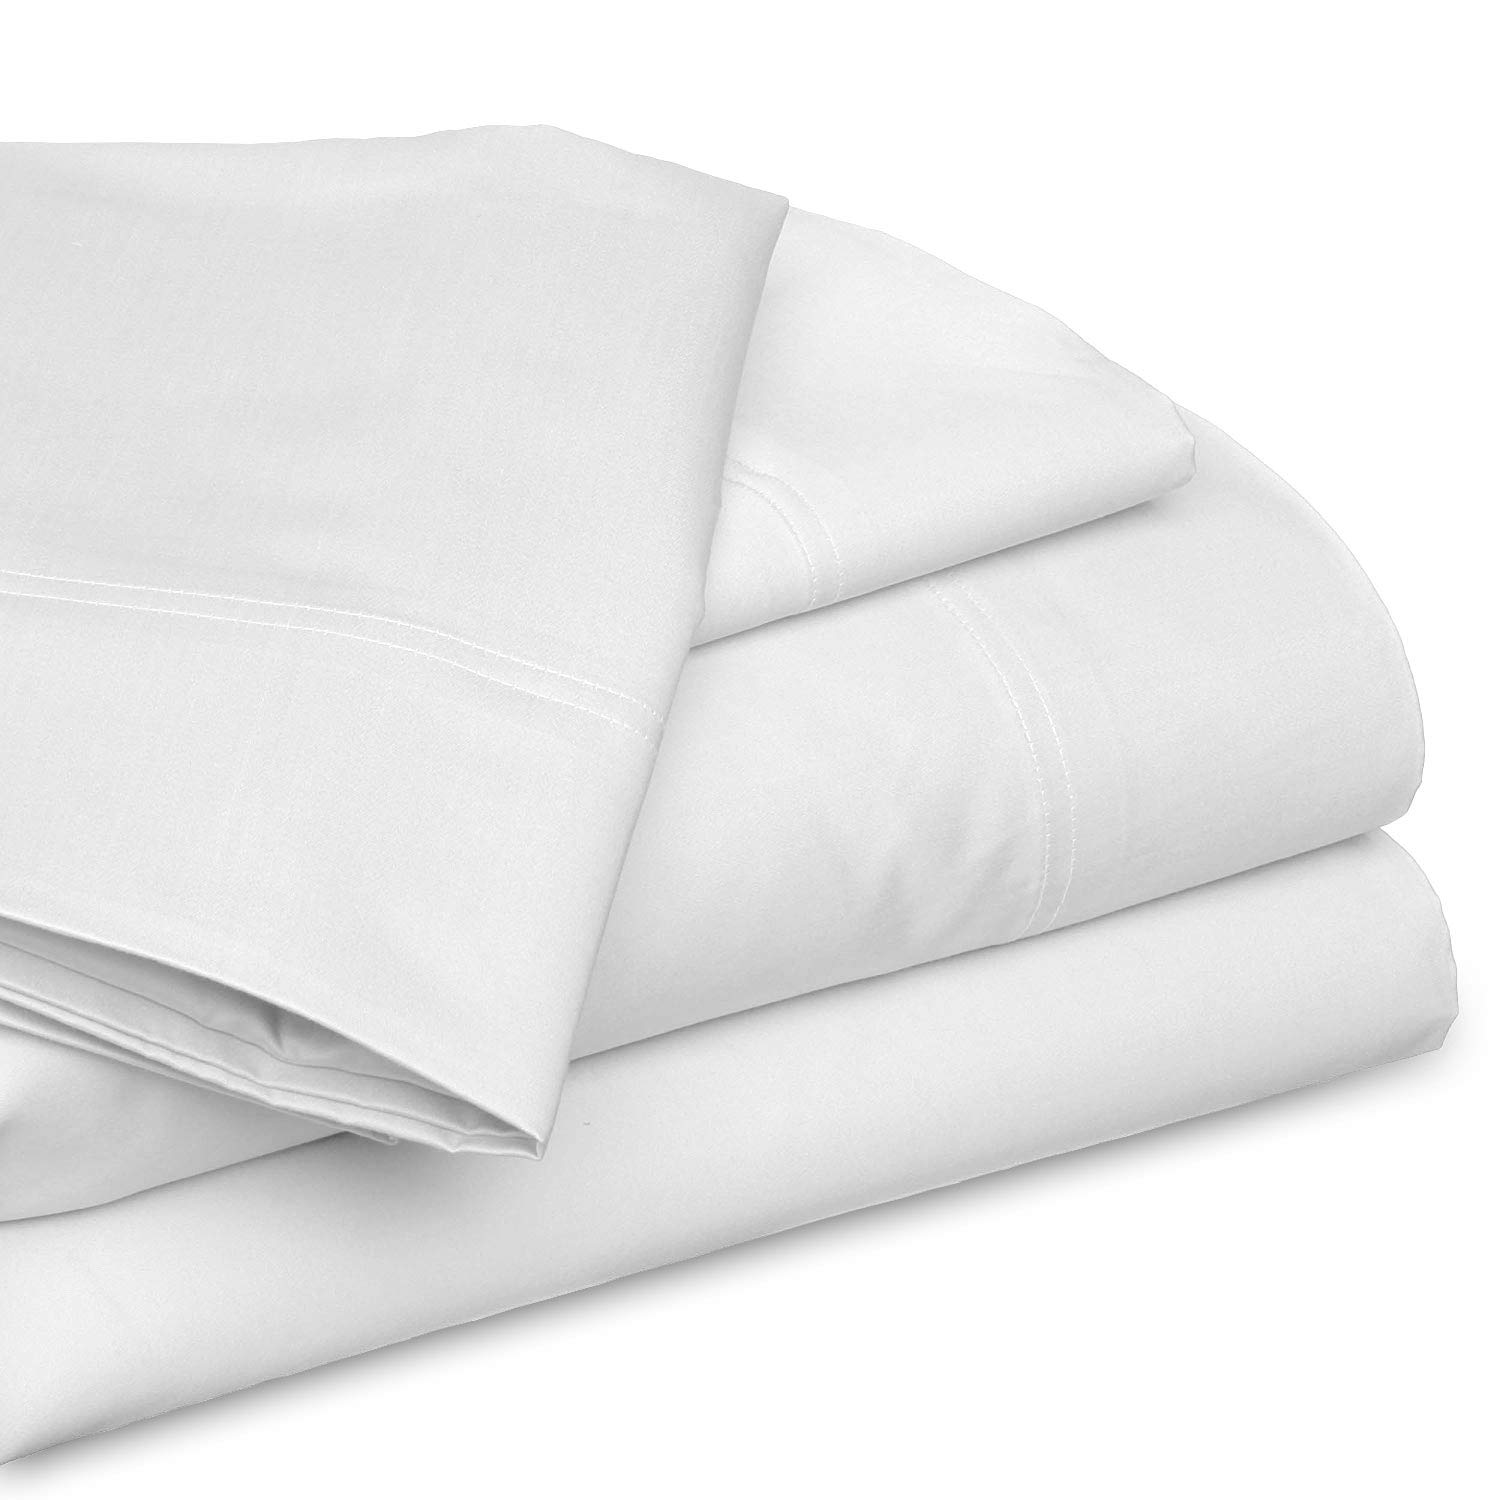 SGI bedding California King Size Sheets - Set 100% Cotton - Luxury Soft 100% Cotton Bed Sheets 1000 Thread Count White Solid